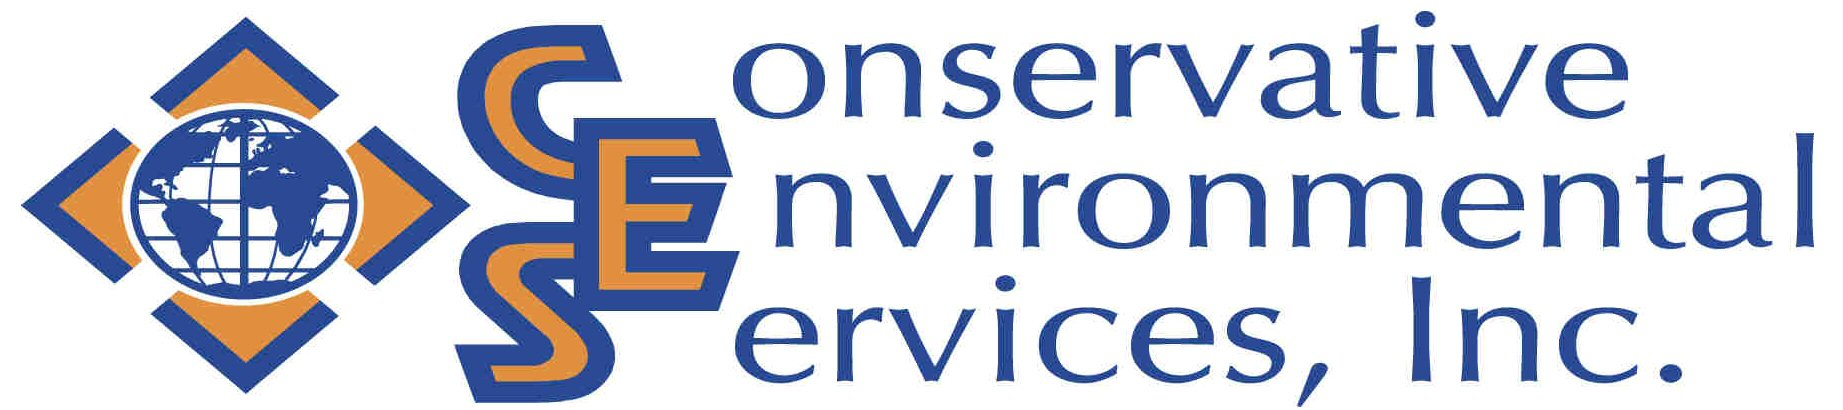 Conservative Environmental Services inc